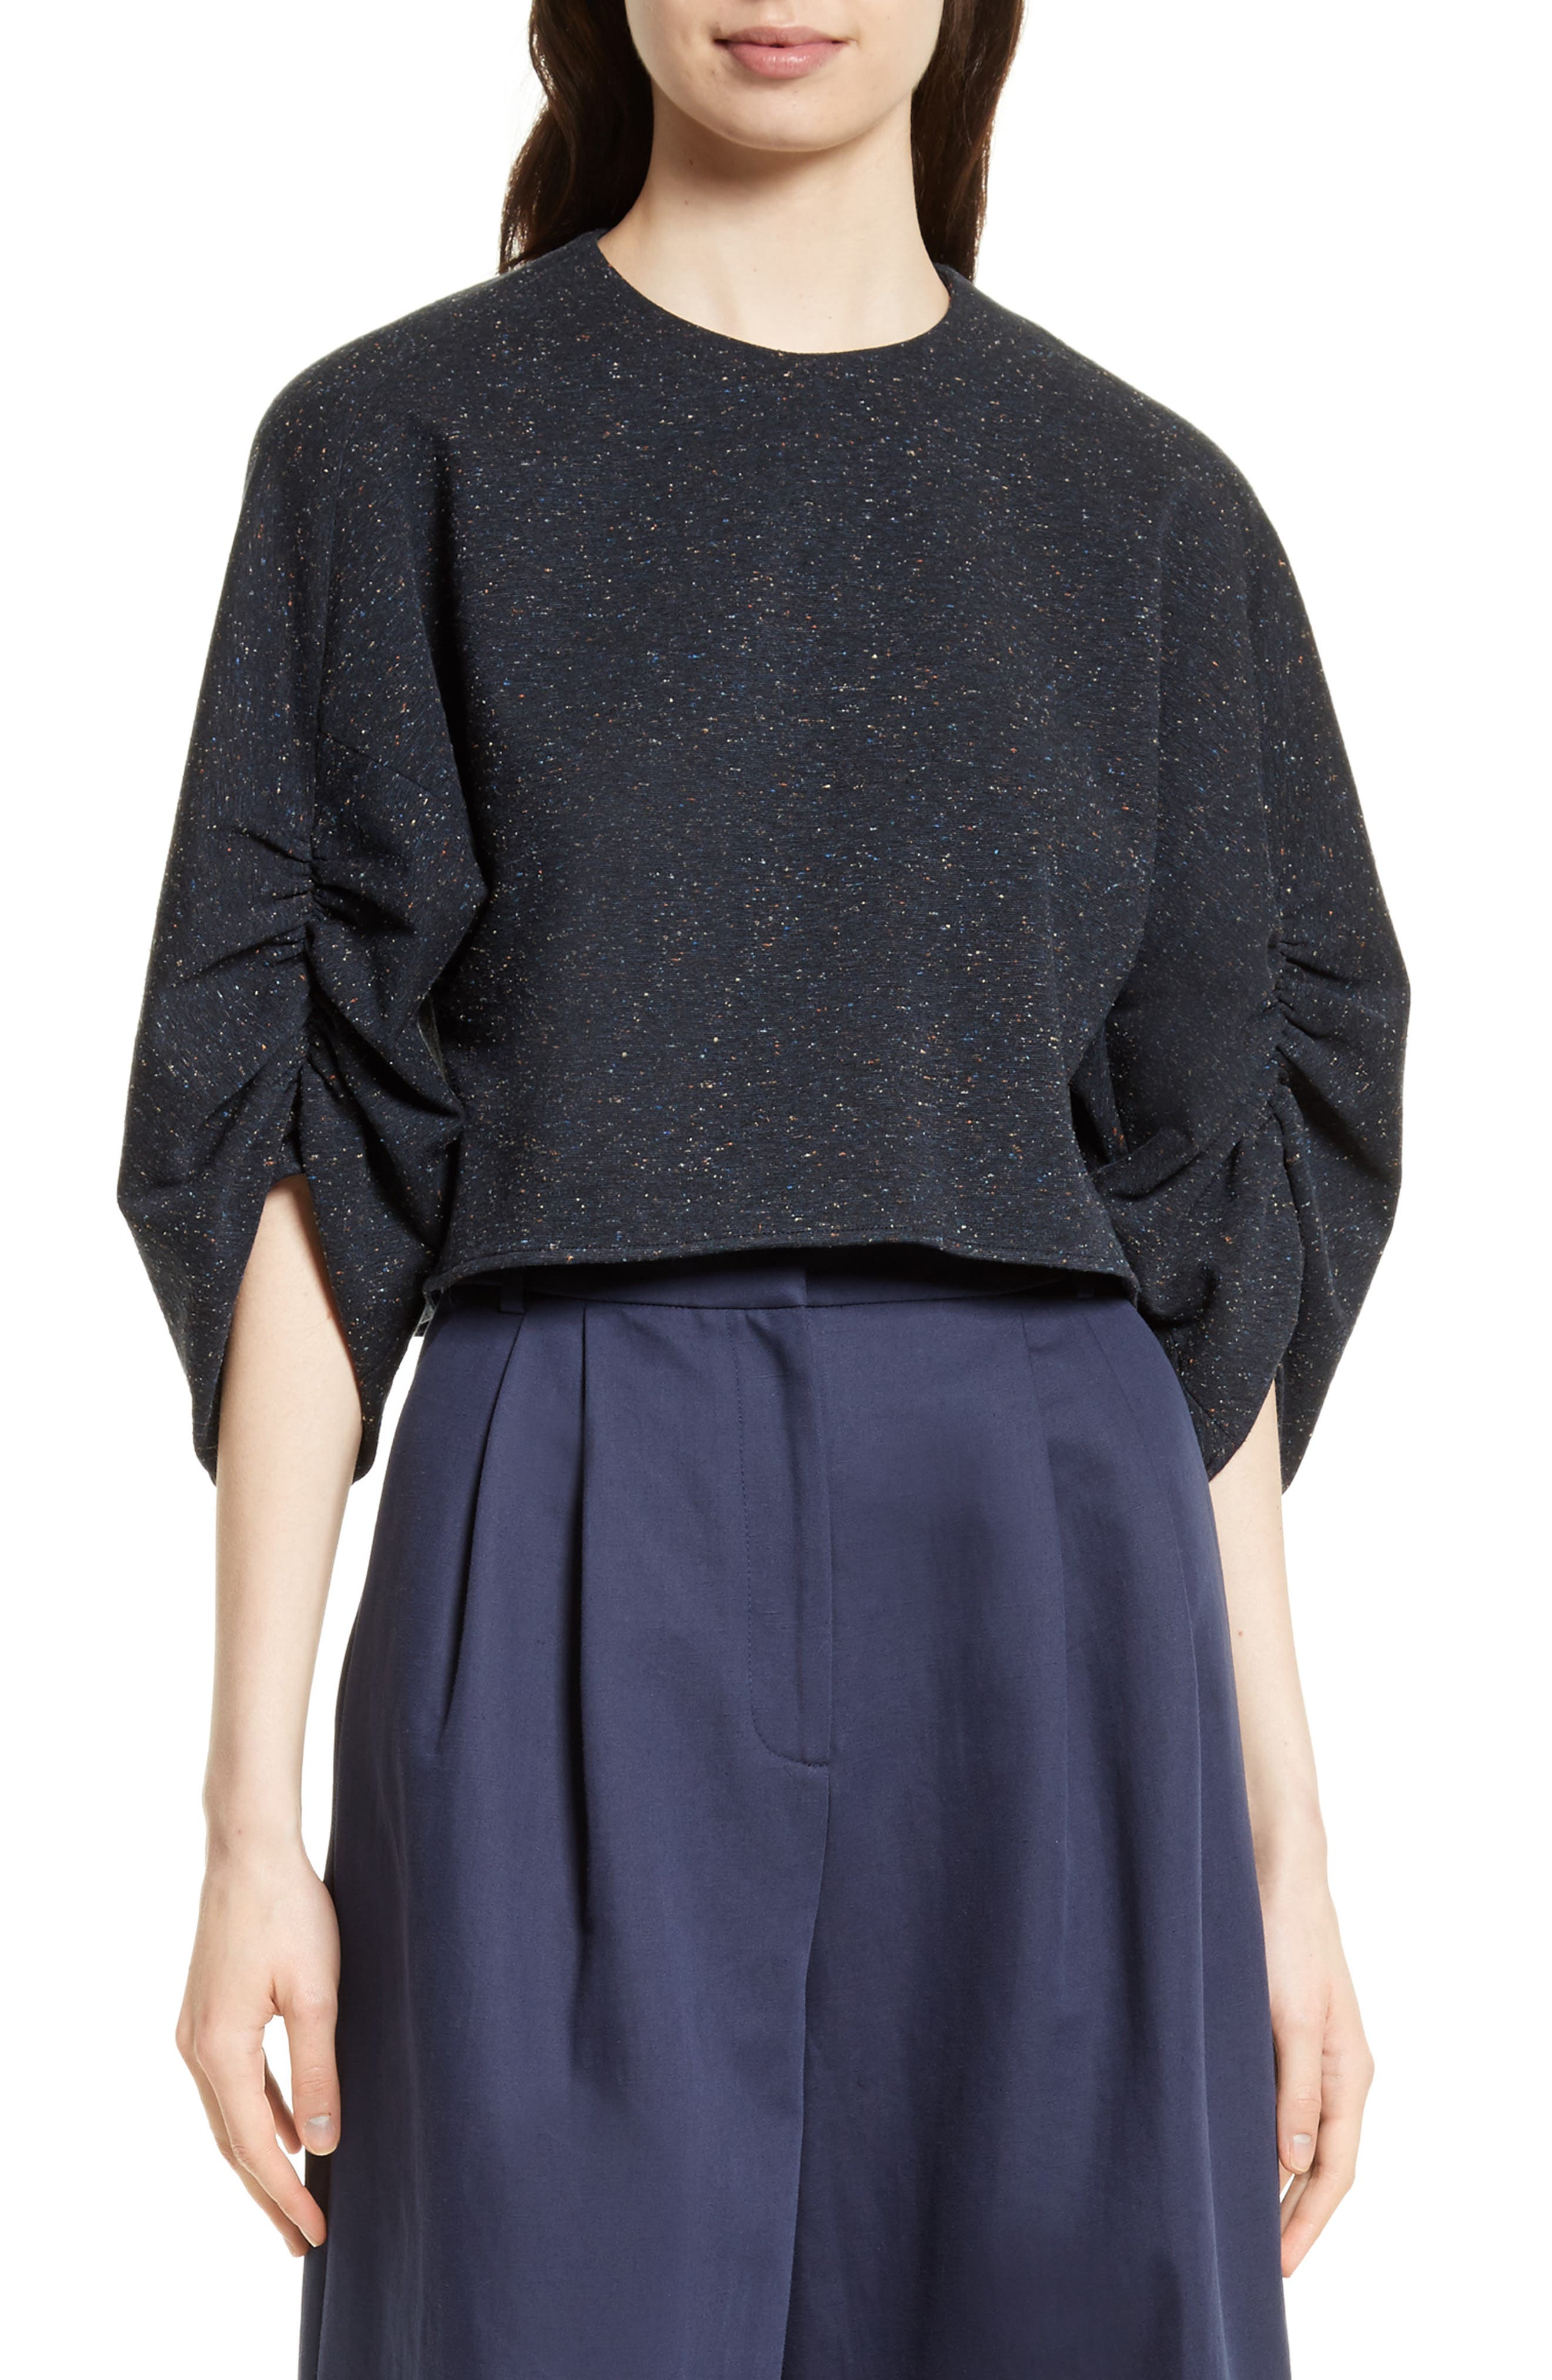 Tibi Imogen Tweed Top